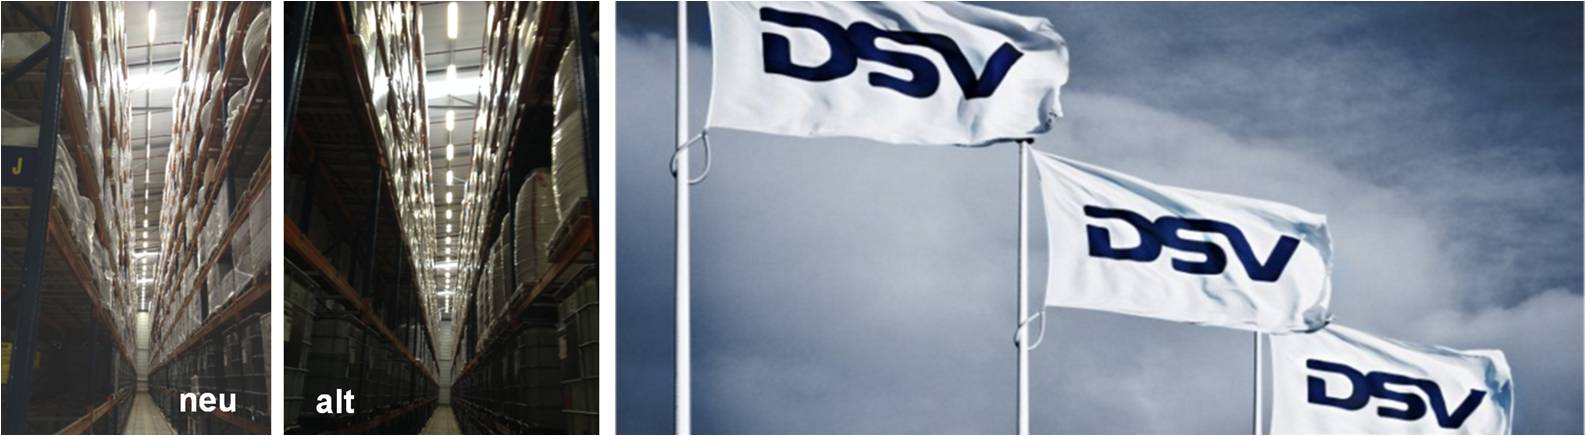 LED Distribution | Projects | Logistics (DSV) | Venlo, Netherlands